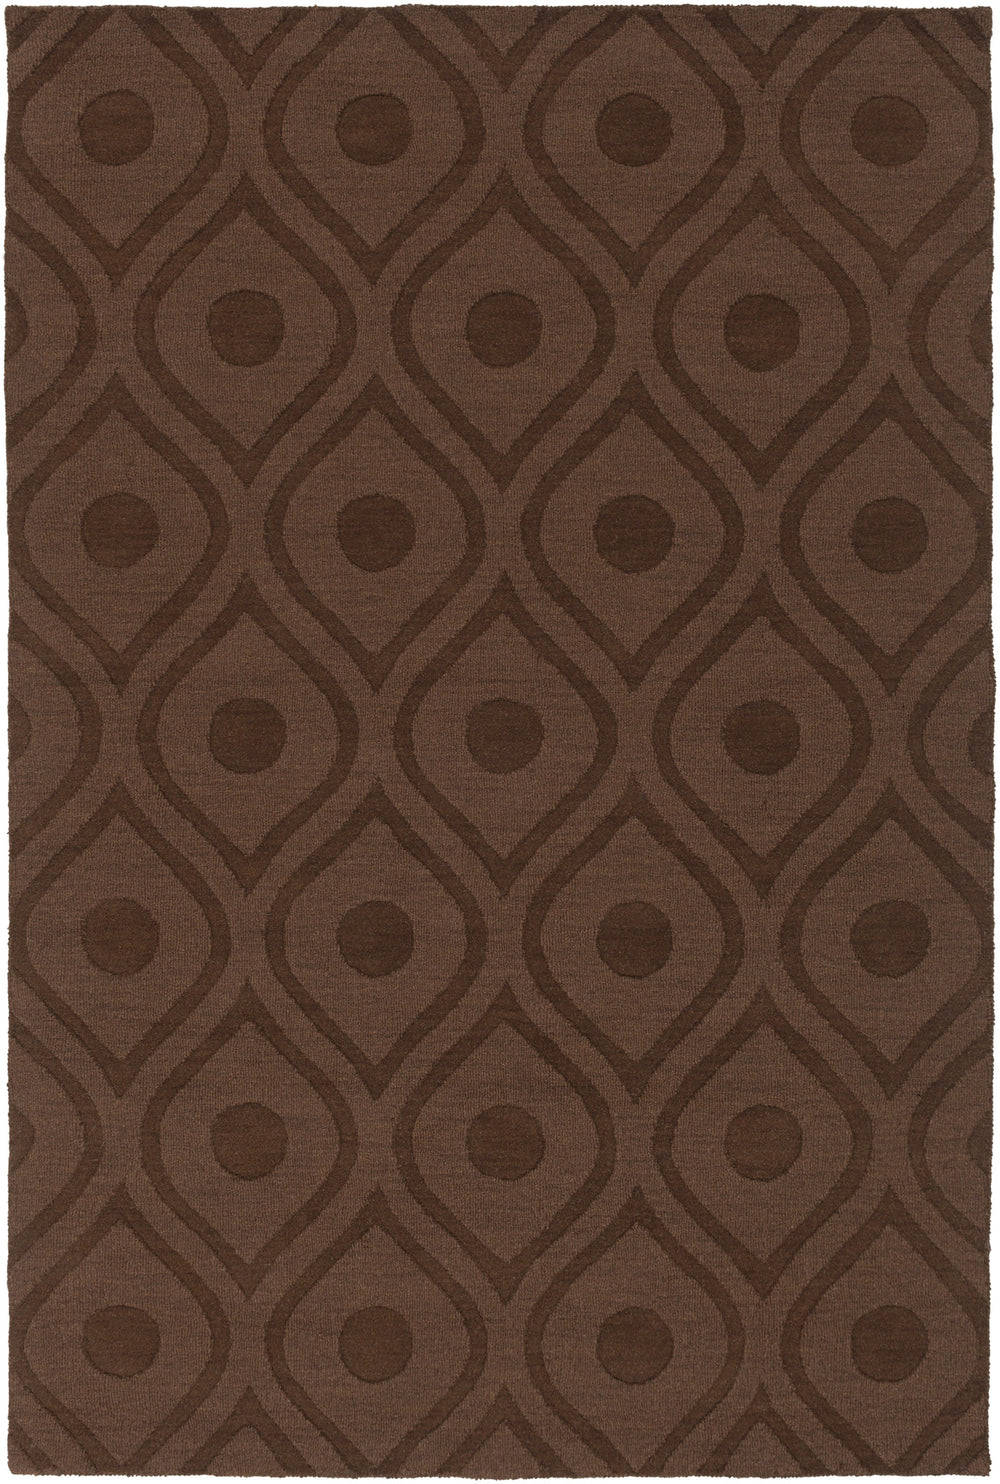 Artistic Weavers Central Park Zara AWHP4002 Area Rug